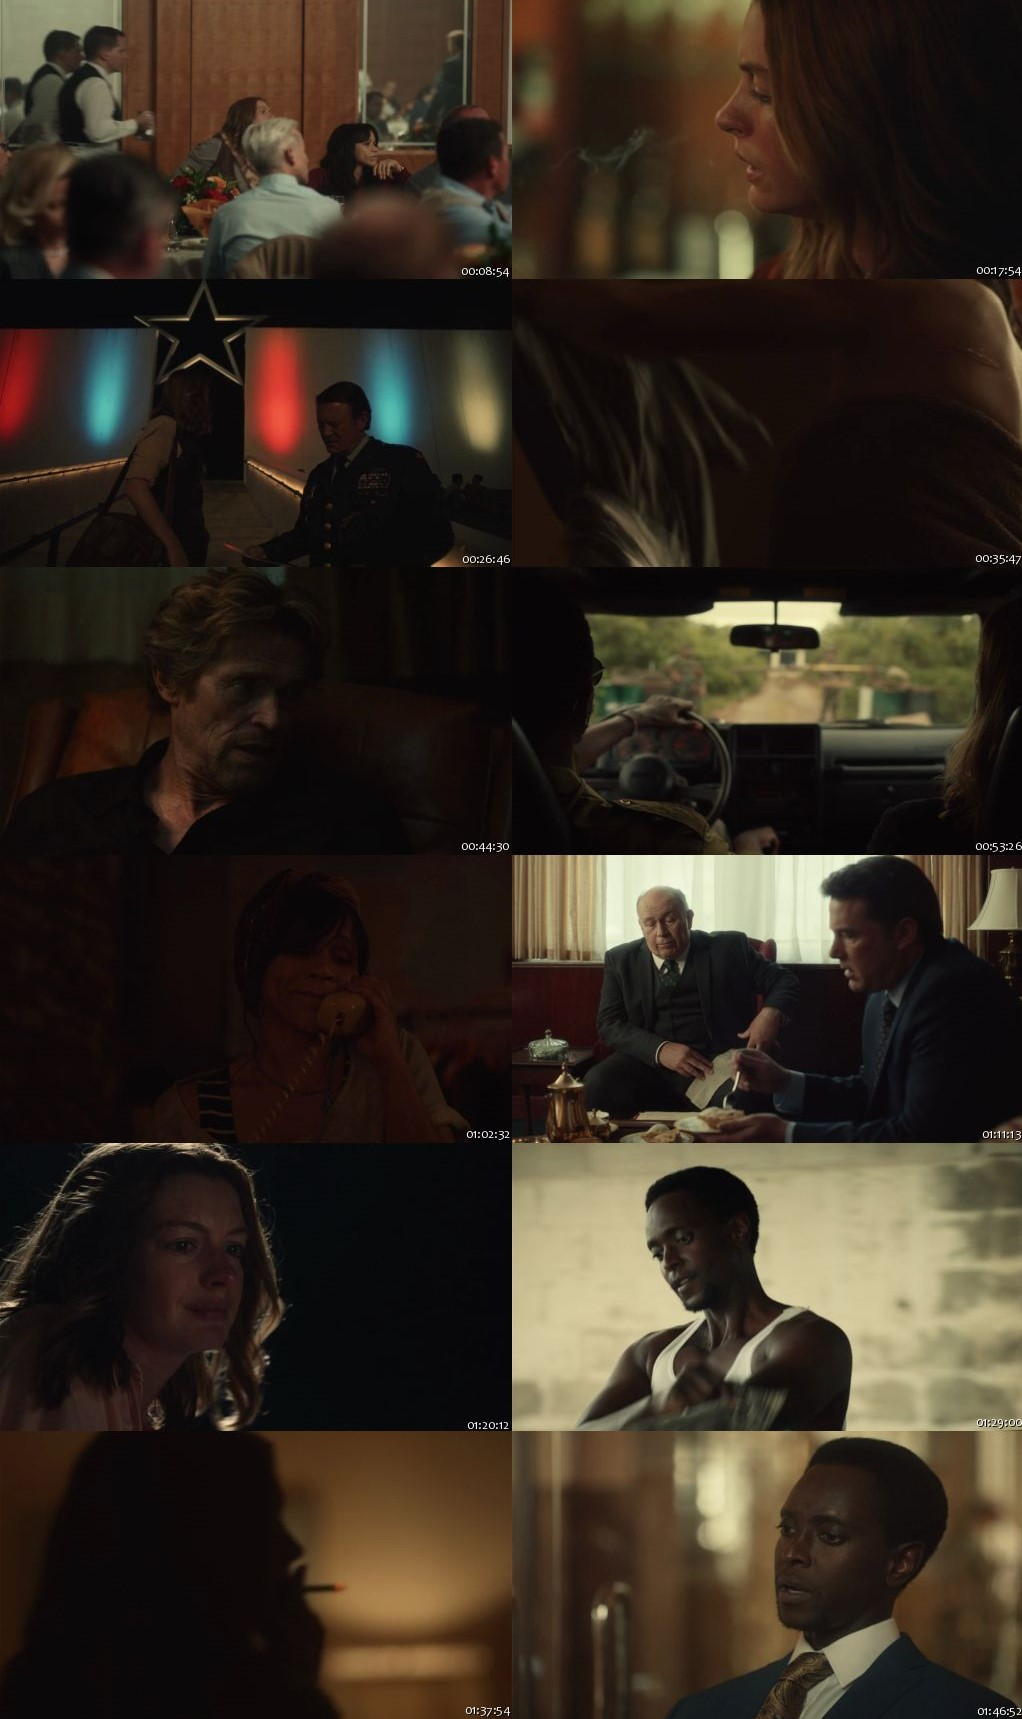 The Last Thing He Wanted 2020 Full Movie Online Watch HDRip 720p